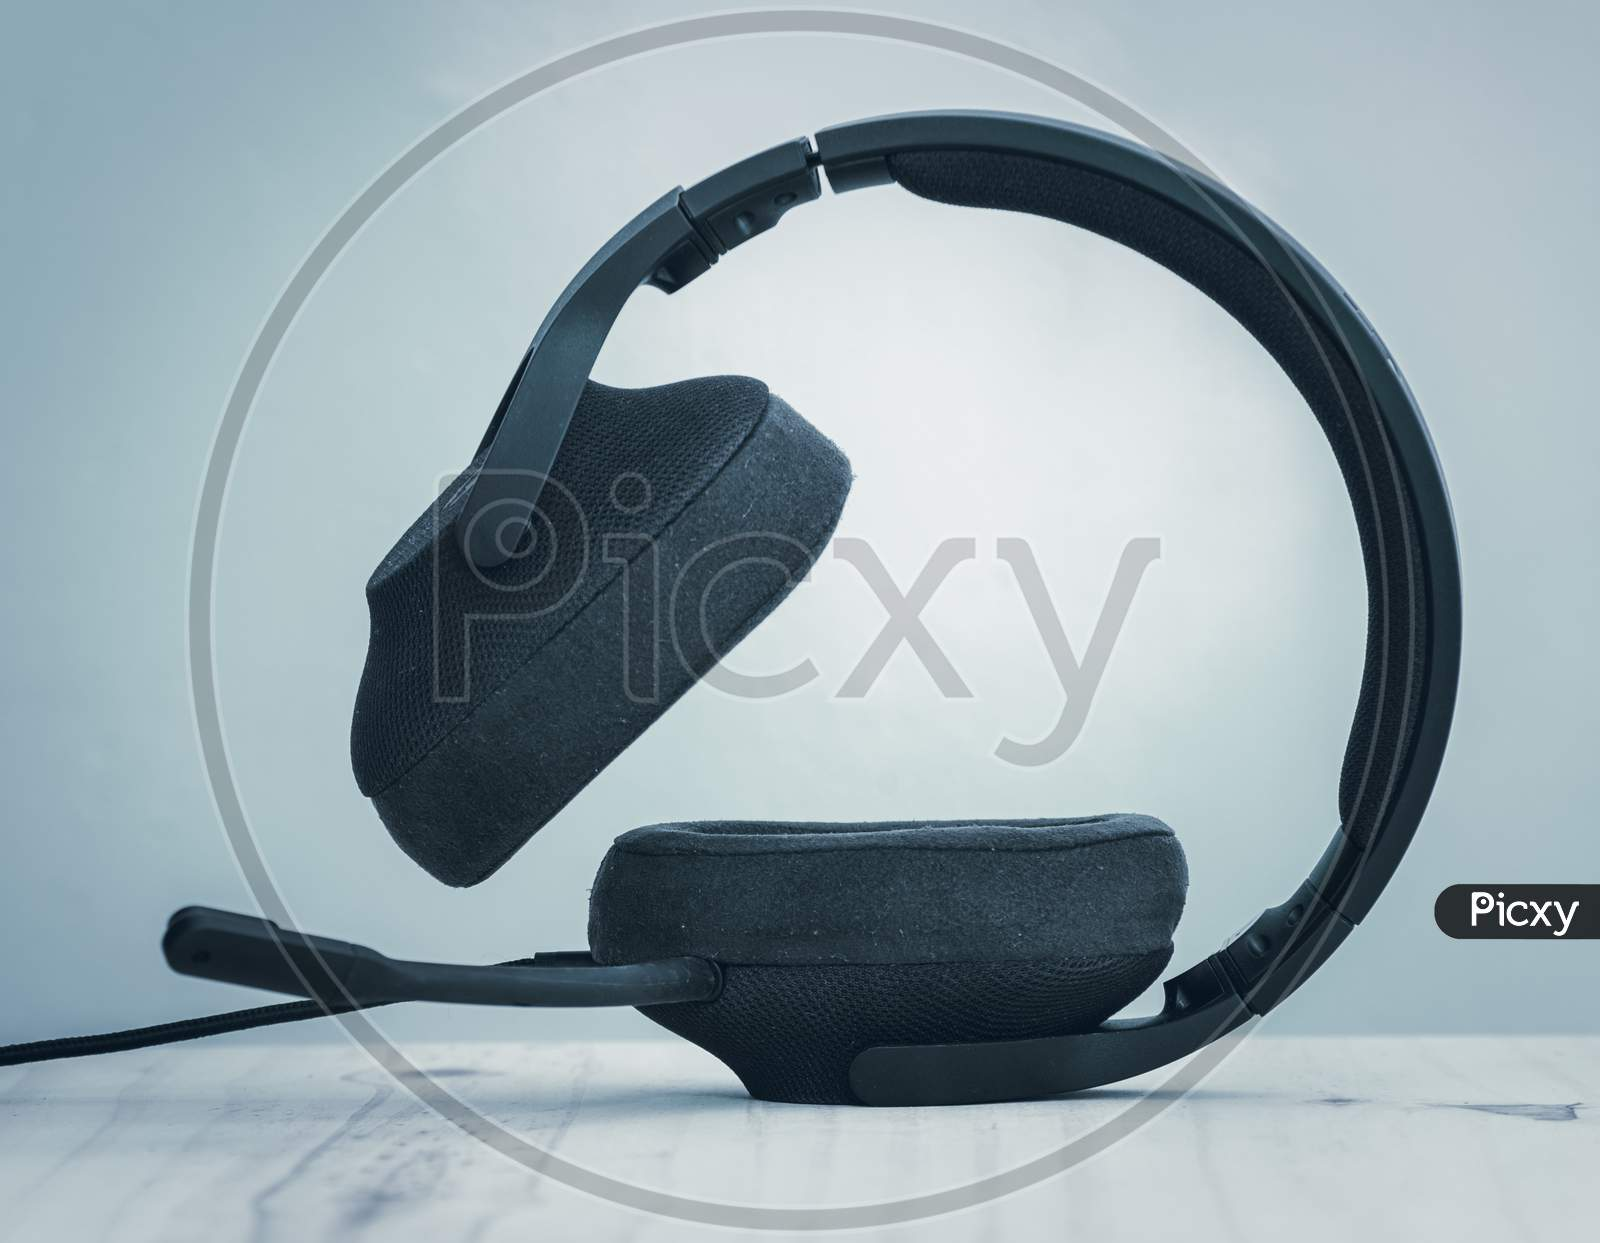 Black Gaming Headset With Detachable Cables, Microphone, And Adjustable Headband, The Concept Of Modern Technology, Headset Standing On An Ear Cup Side View.